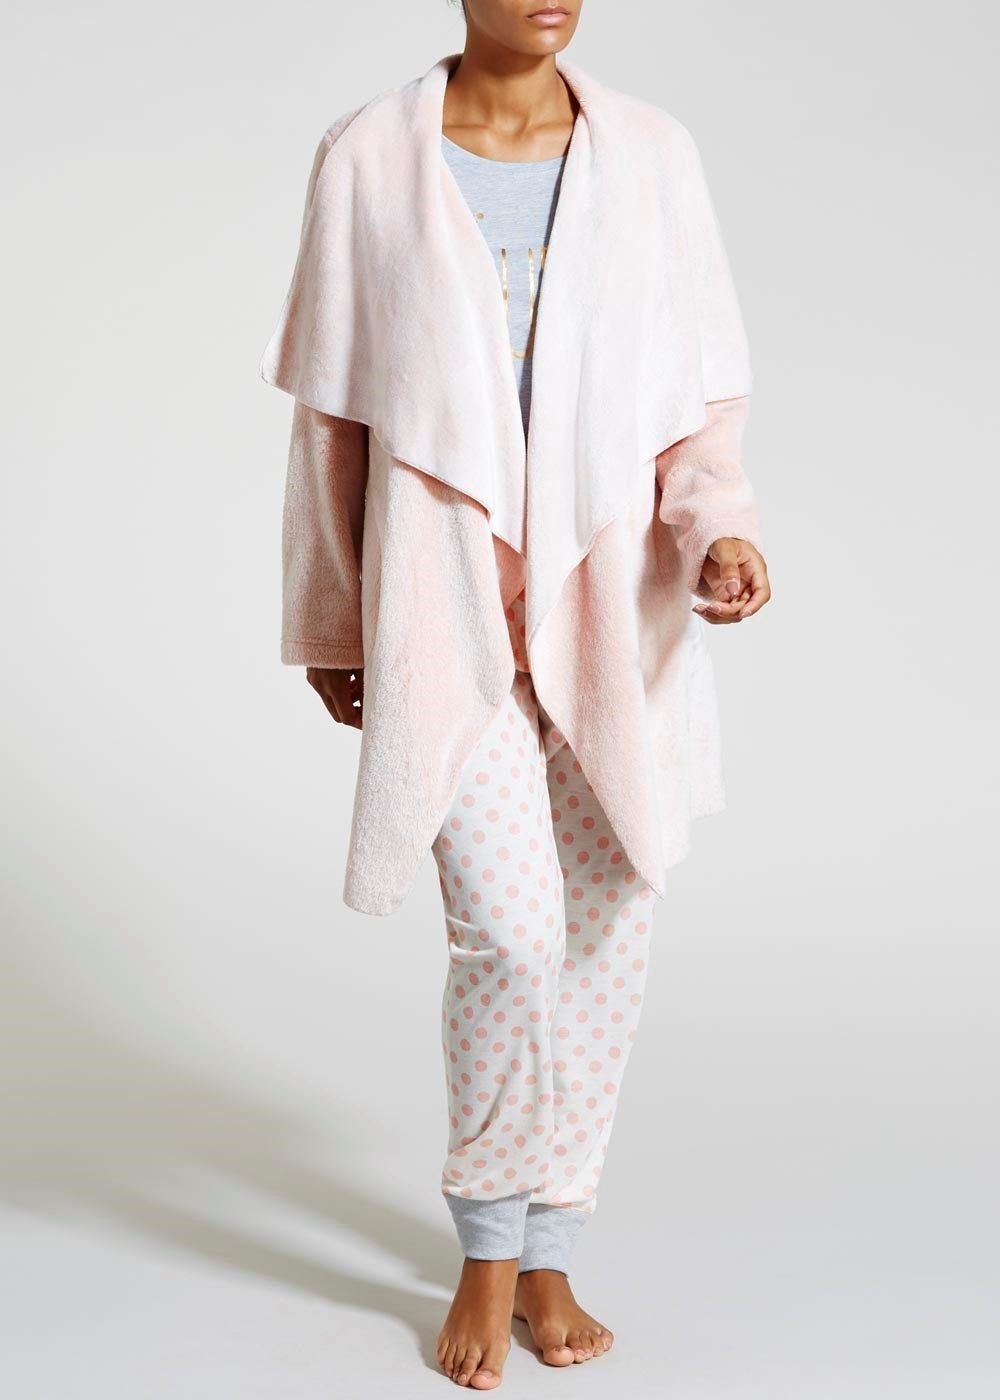 Waterfall Dressing Gown Nightwear Pinterest Gowns